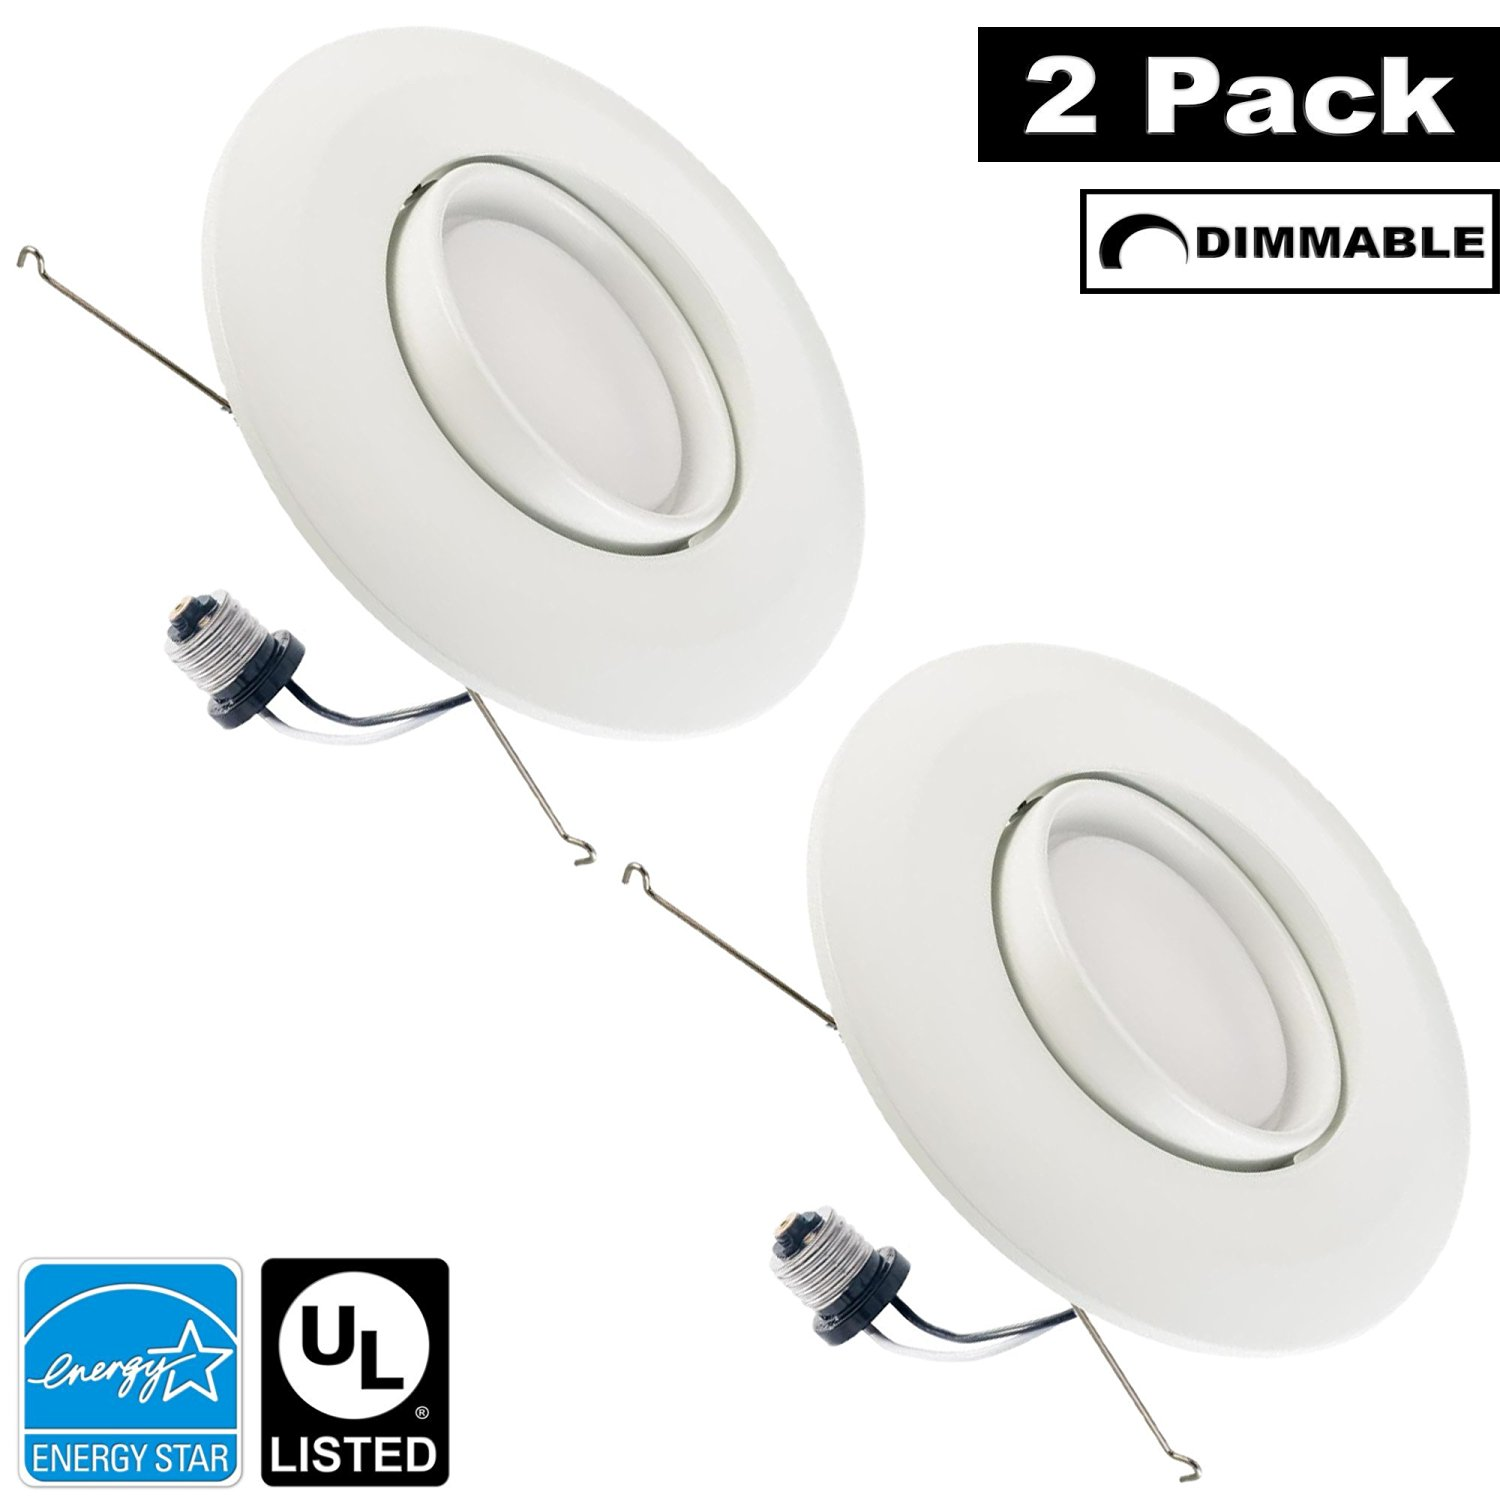 Luxrite LR23045 (2-Pack) 15W 5/6 Inch LED Gimbal Retrofit Downlight, 120W Equivalent, ENERGY STAR, Dimmable, Bright White 5000K, Adjustable Recessed LED Ceiling Light, UL Listed